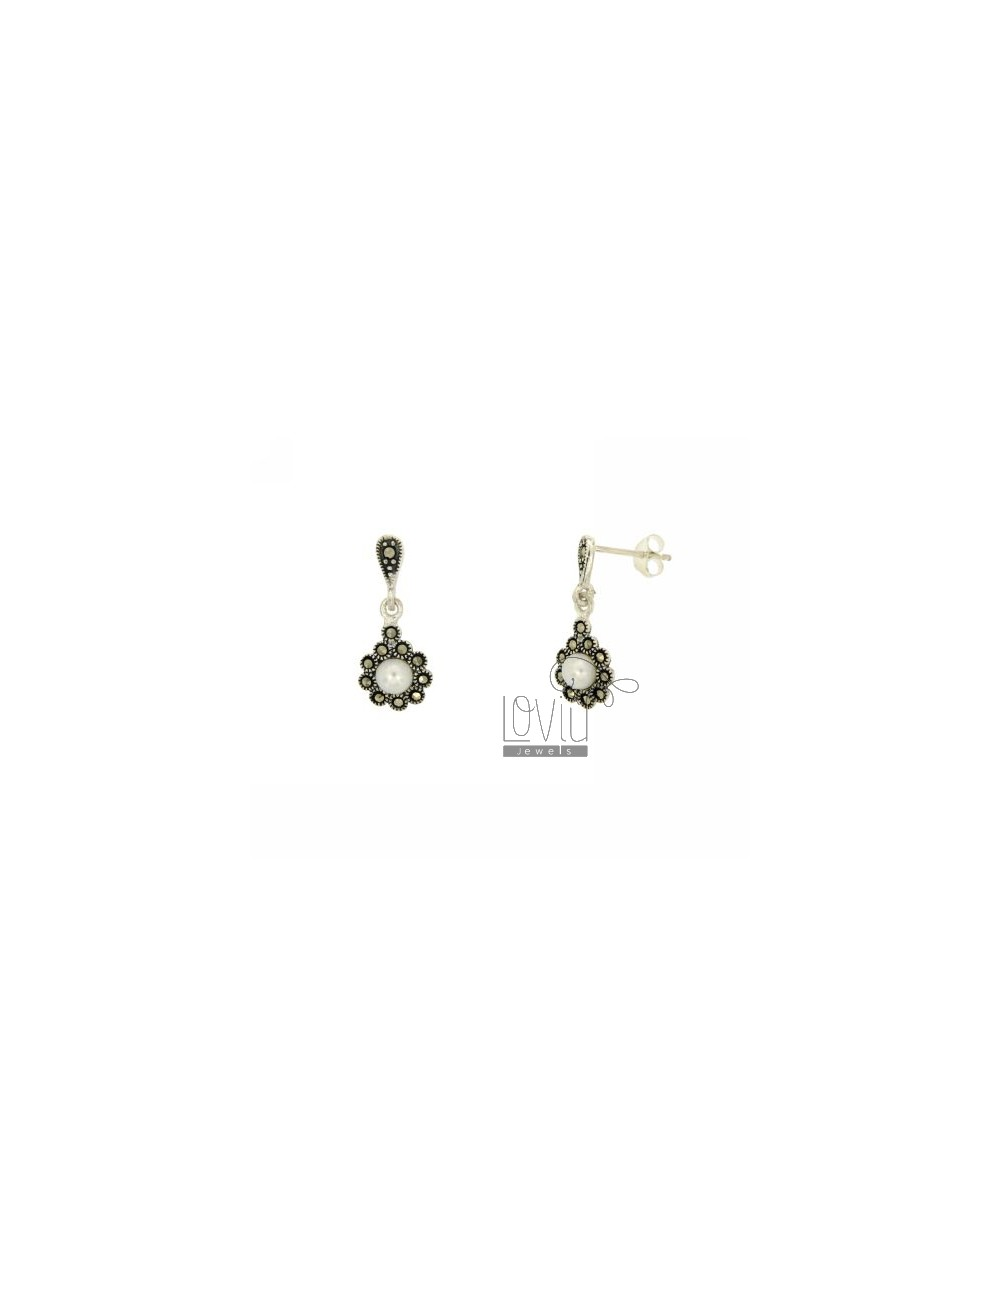 EARRINGS PEARL SILVER WITH MARCASITE TIT 925 ‰